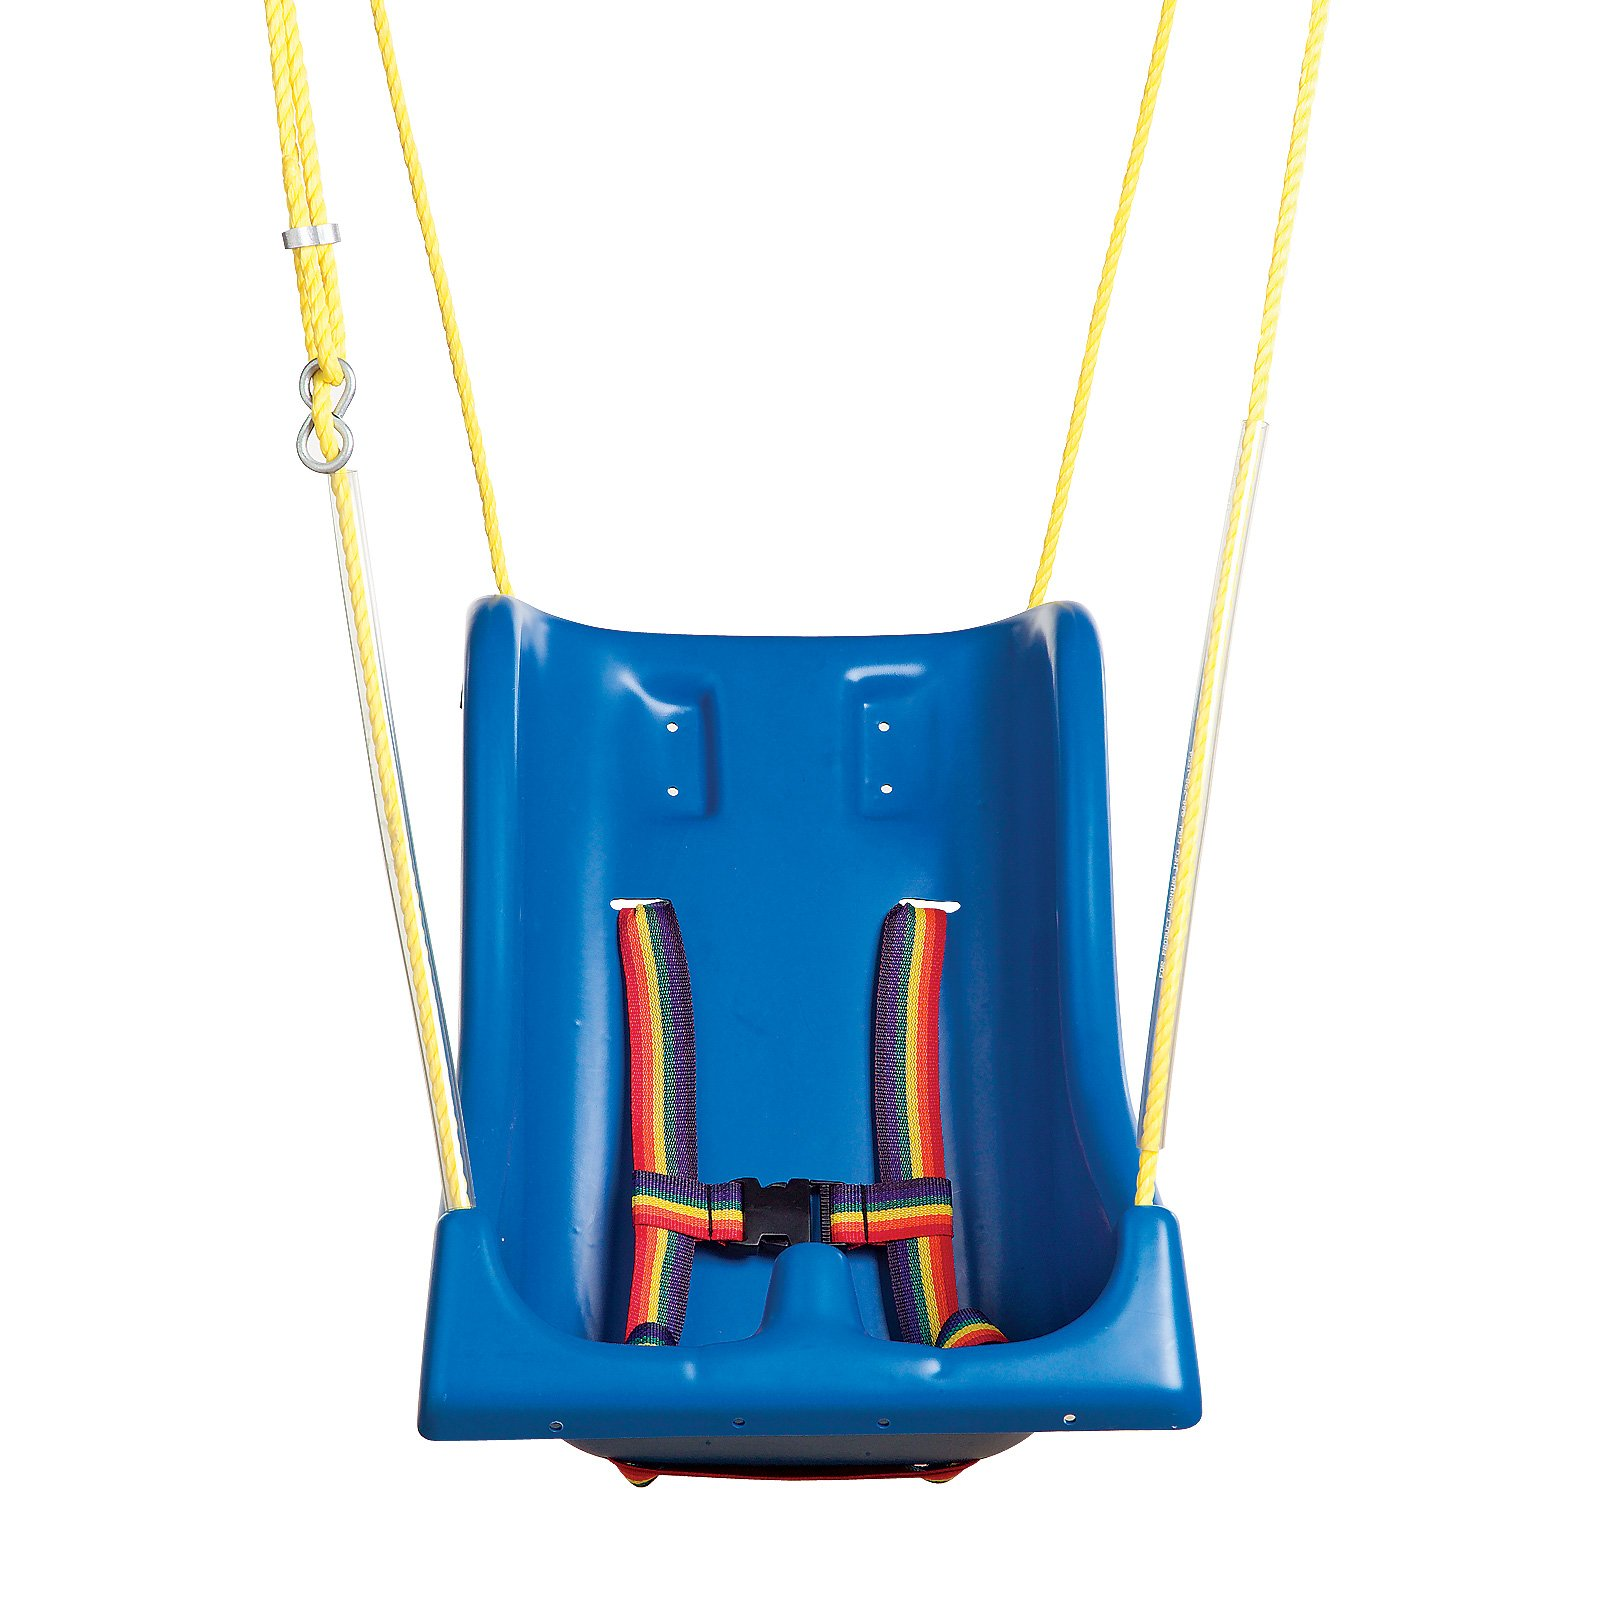 full support swing seat with pommel, large (adult) by Skillbuilders (Image #1)